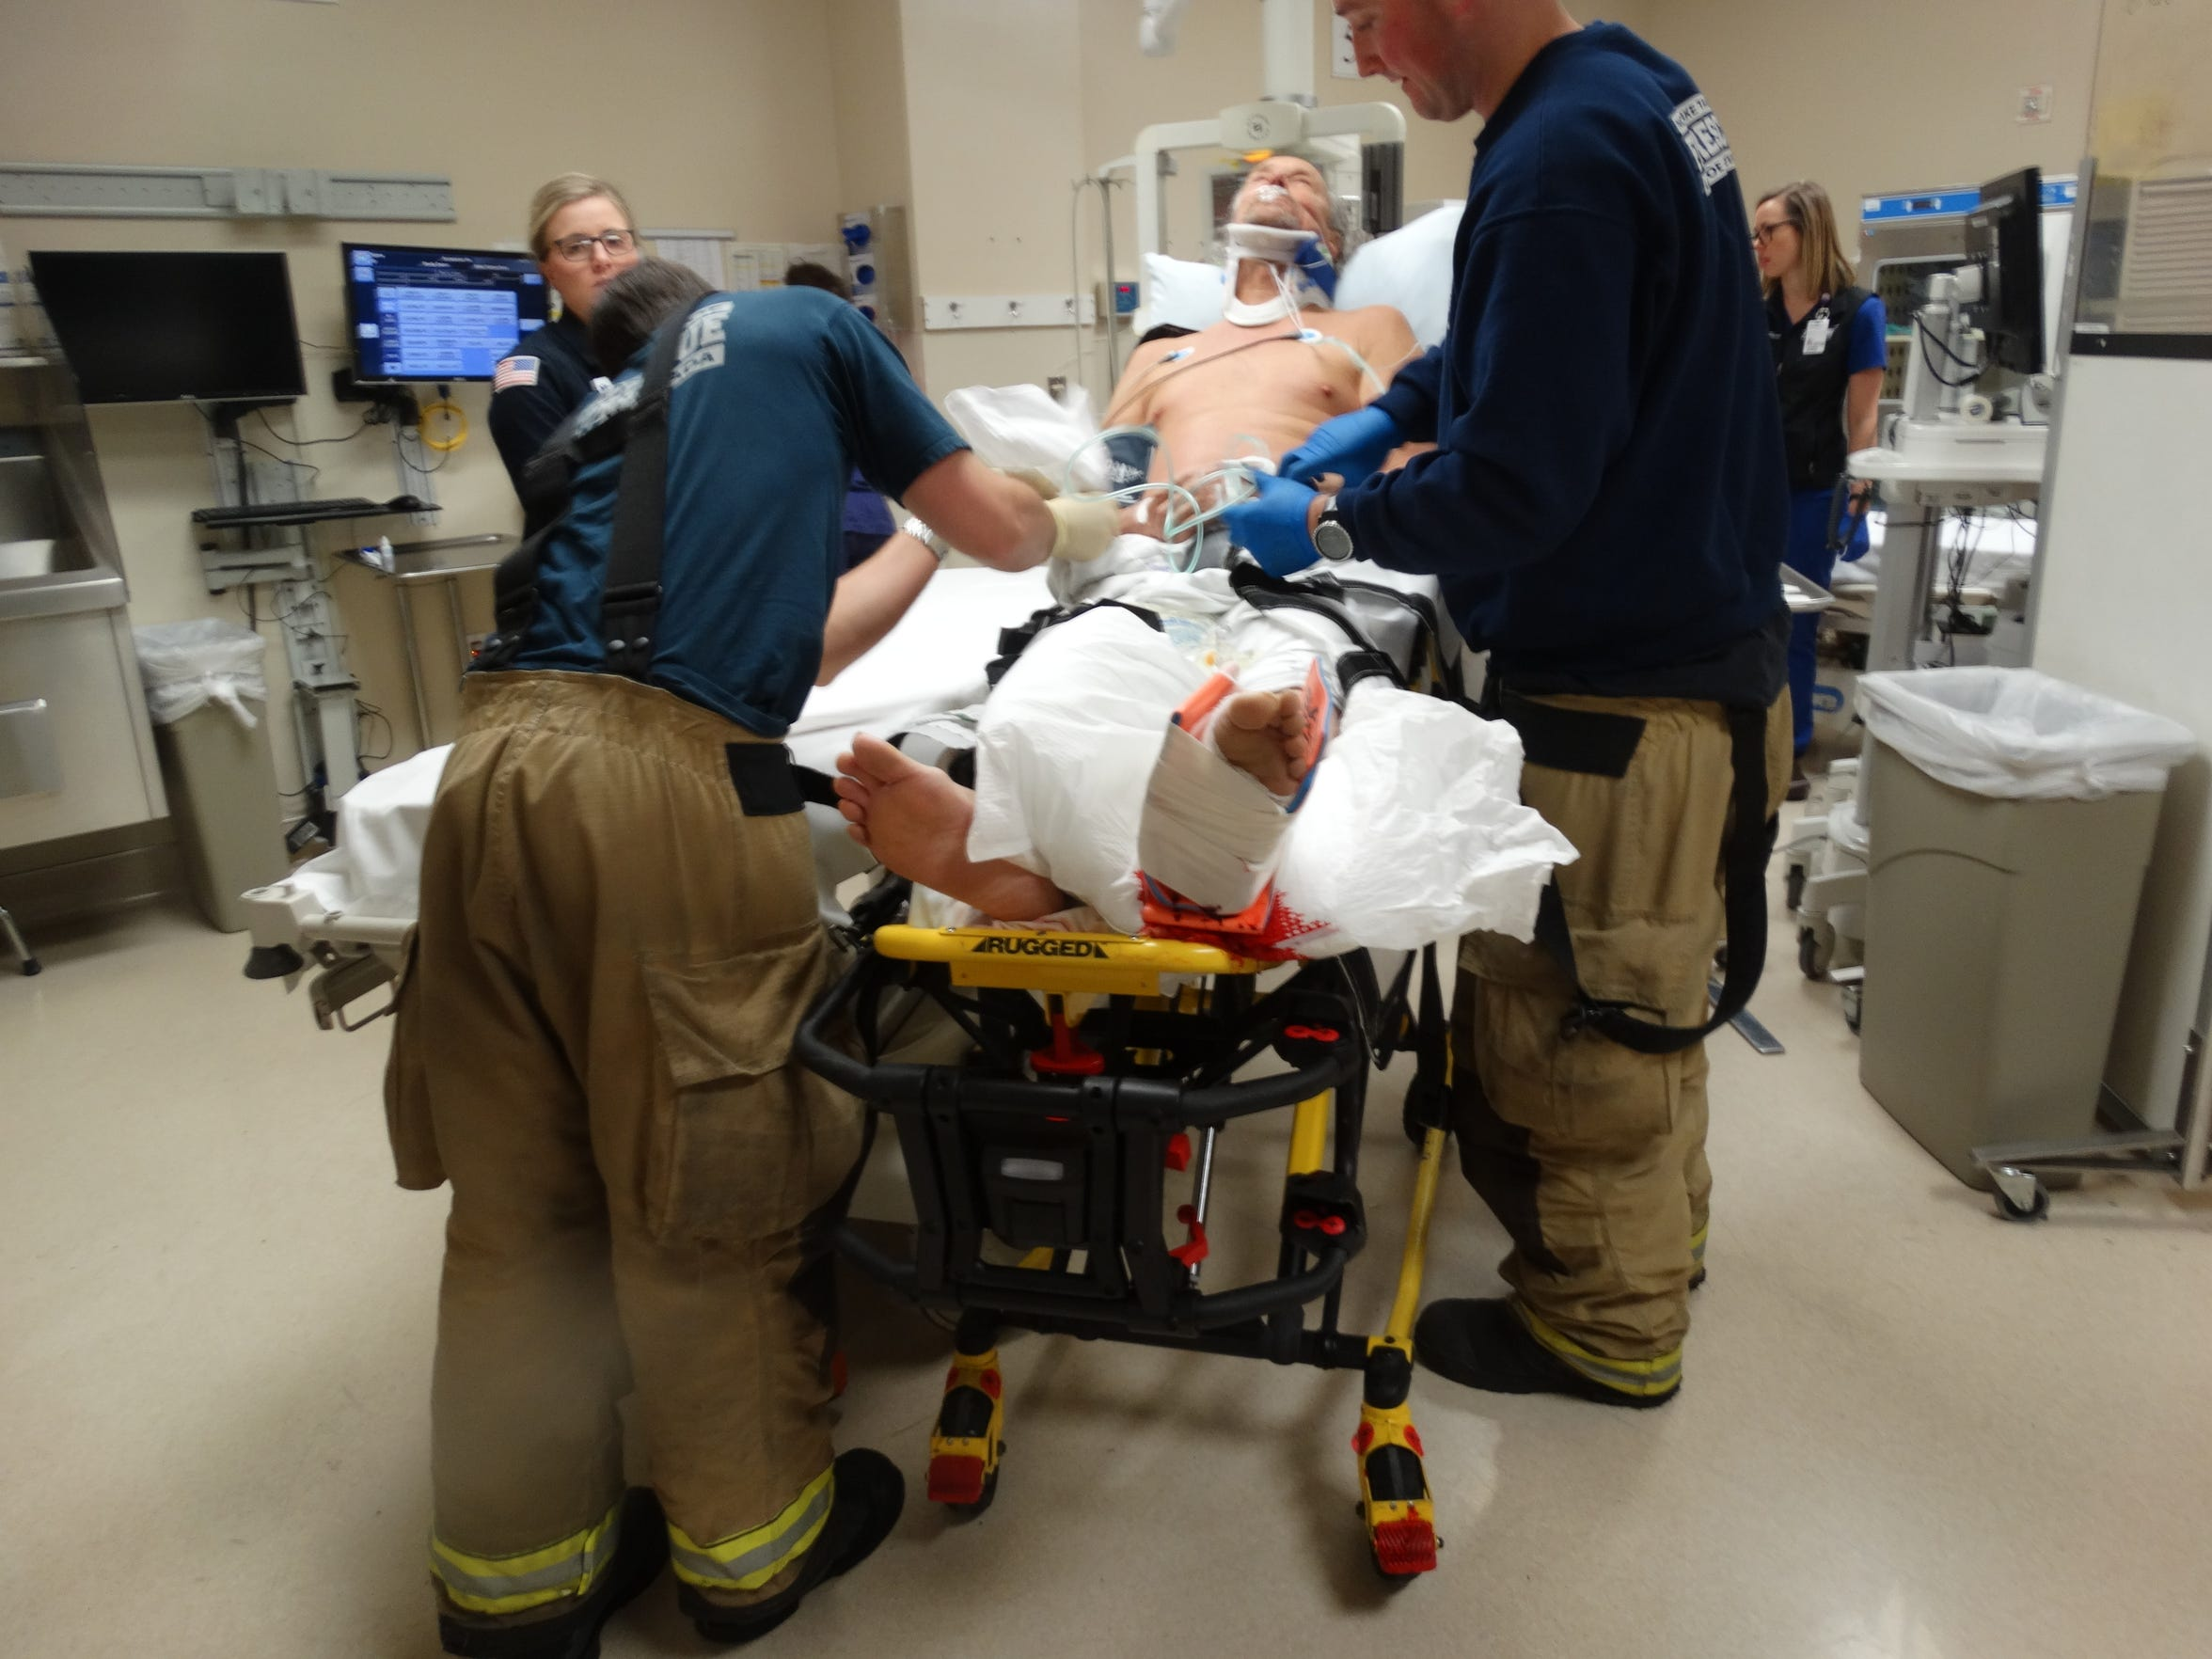 Alan McMann on a gurney in Renown Regional Medical center shortly after being struck by the plow on March 22, 2018. The force of the impact shot the left-front leaf springs of his '78 Chevrolet pickup through the floor of the cab and mangled his left foot, nearly tearing it off.